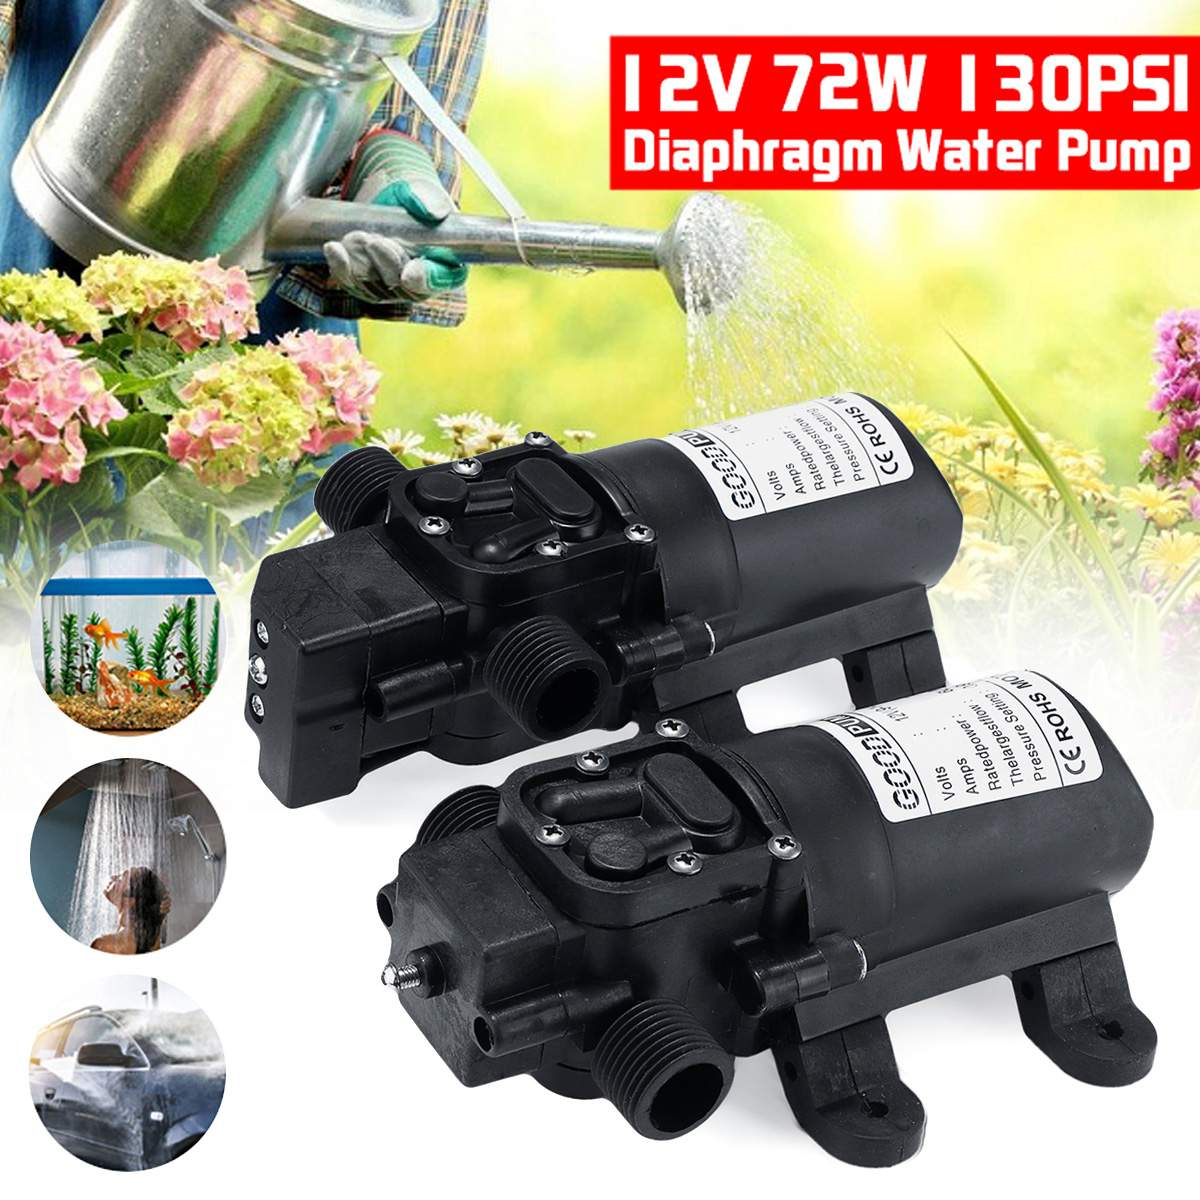 DC 12V <font><b>130PSI</b></font> 6L/min Electric Water <font><b>Pump</b></font> Black Micro High Pressure Diaphragm Water <font><b>Pump</b></font> Sprayer Car Wash 12 V image